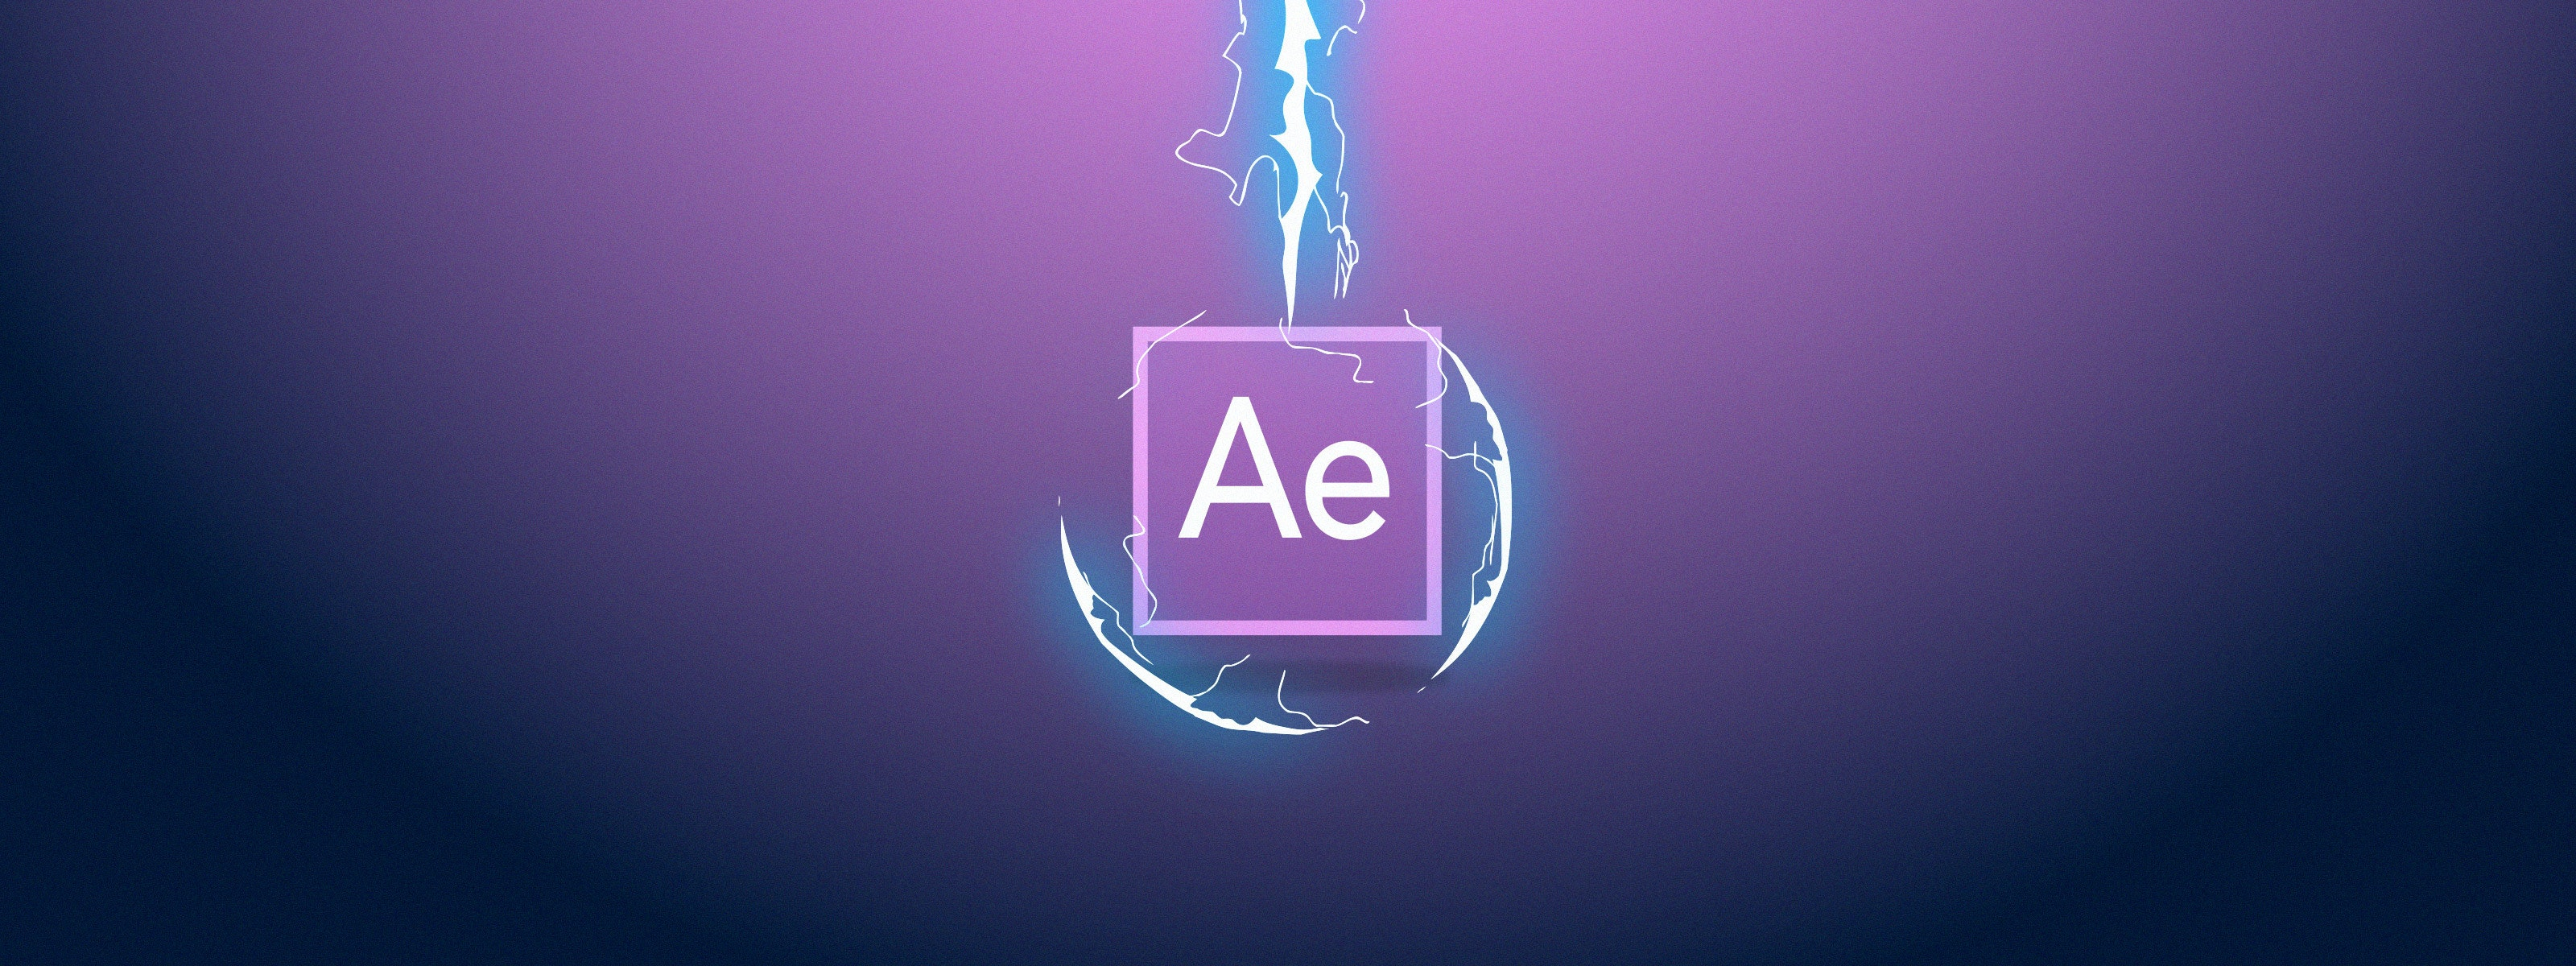 How To Create The Shazam Transition In After Effects